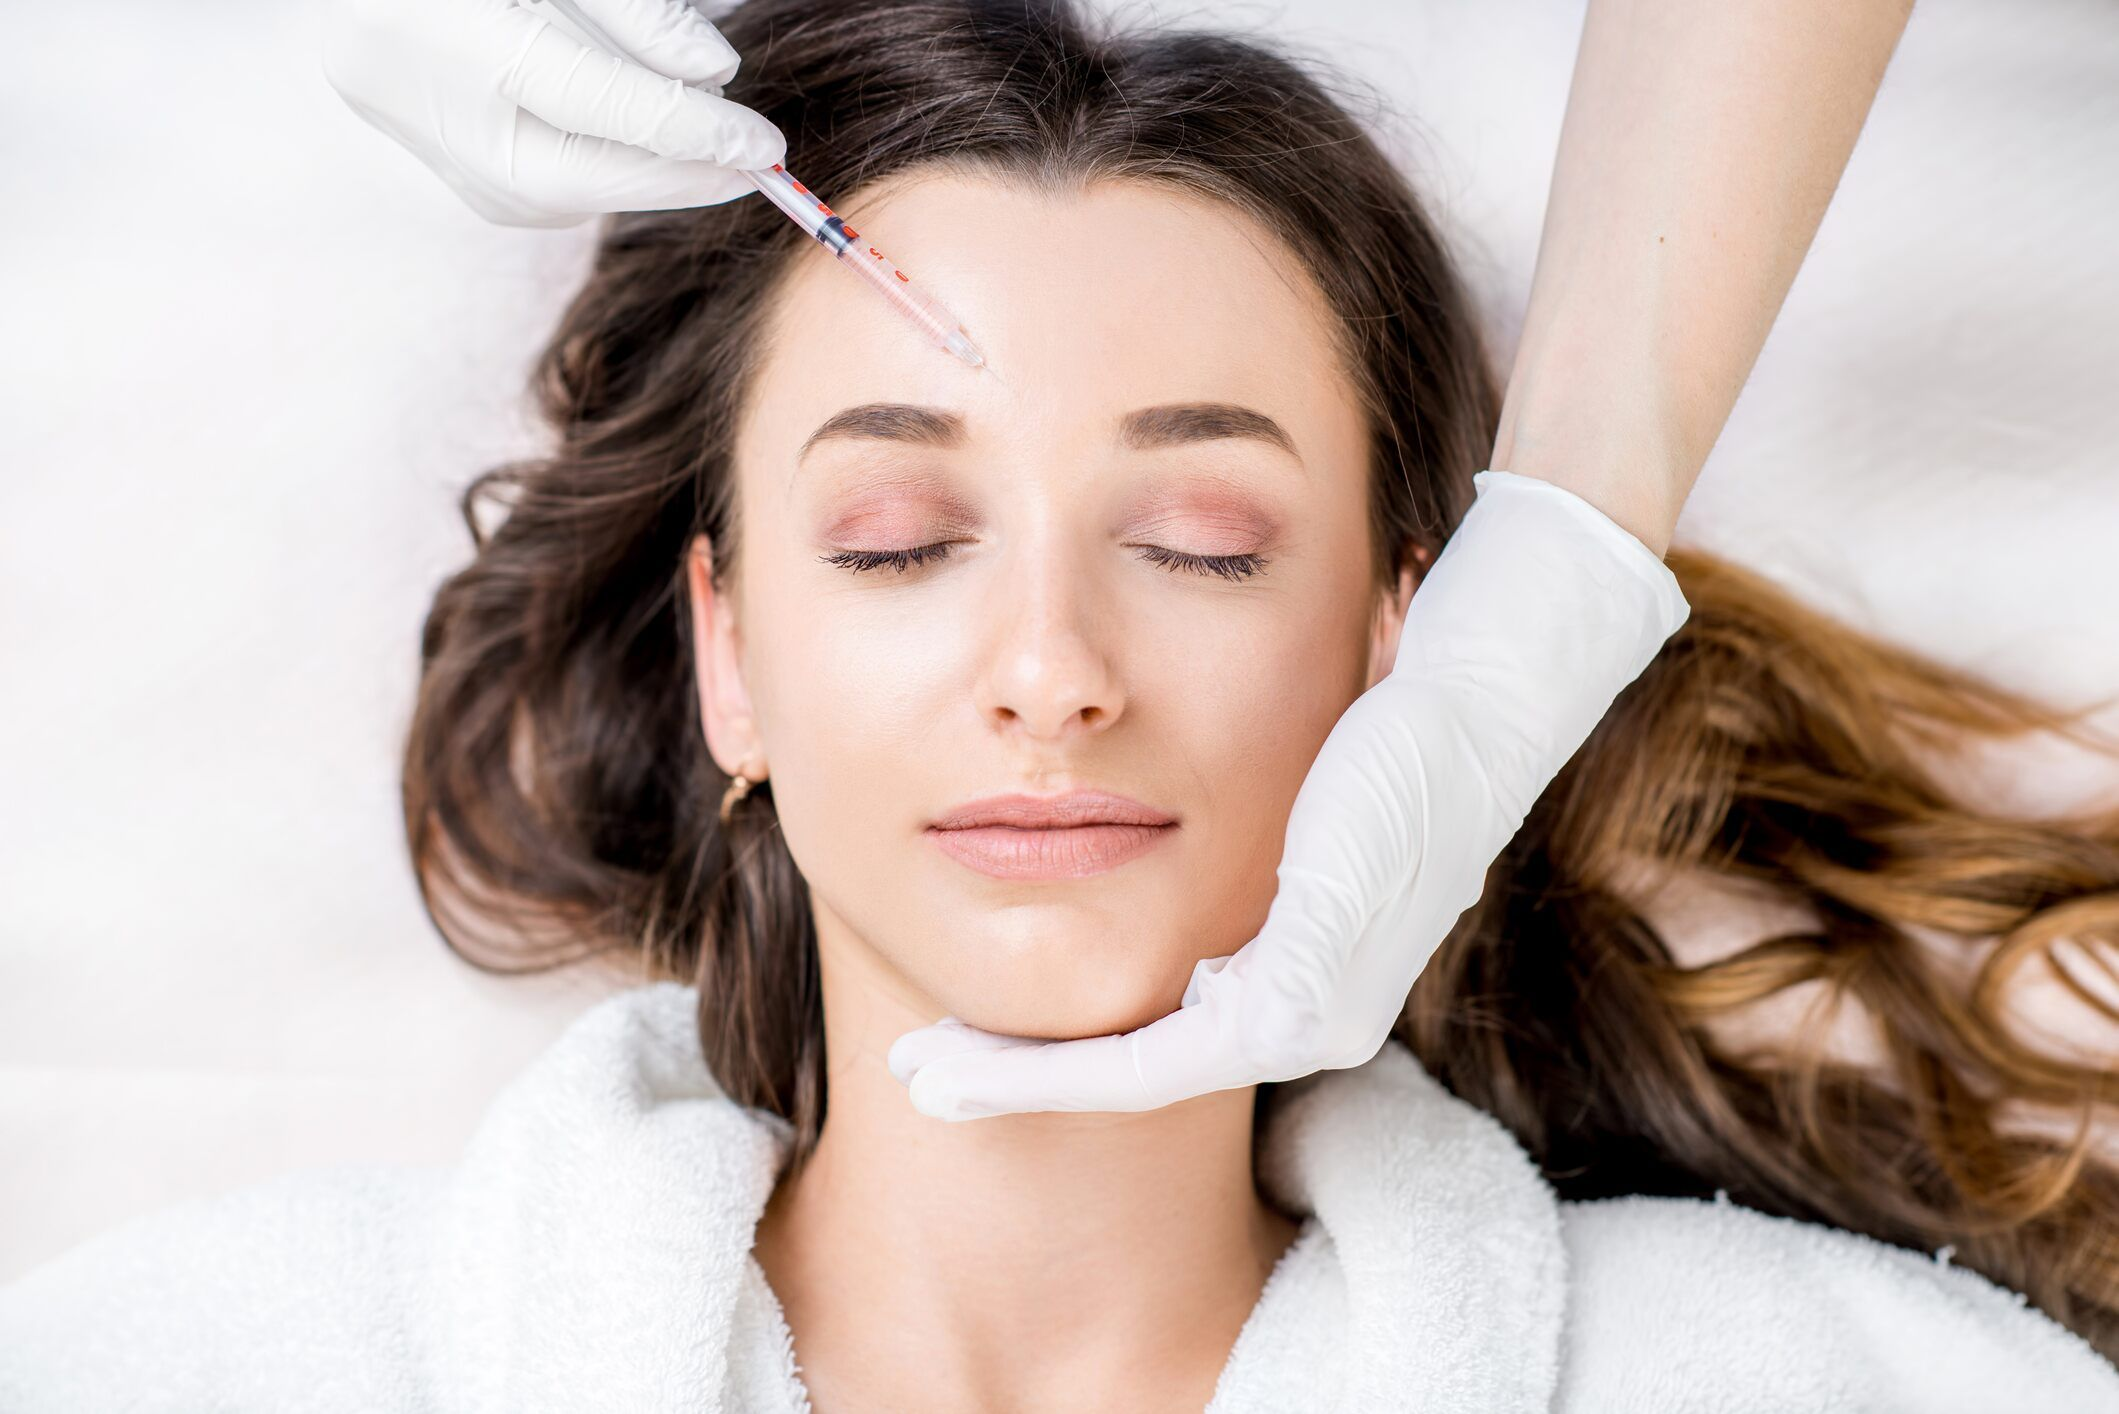 Popular cosmetic and medical skin treatments